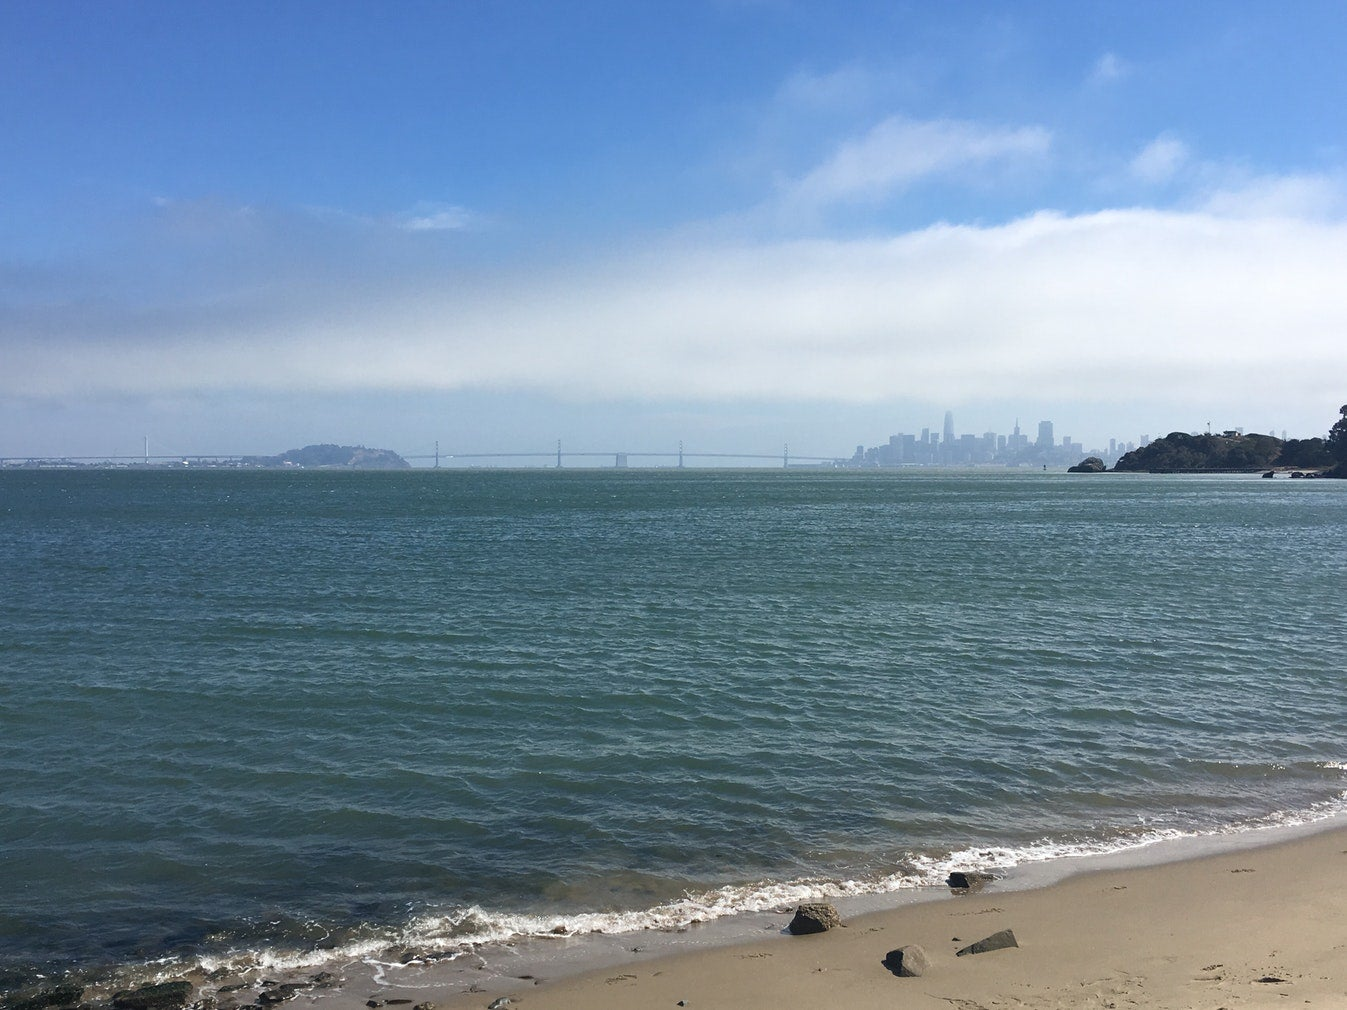 view of san francisco skyline and golden gate bridge from beach shore on angel island